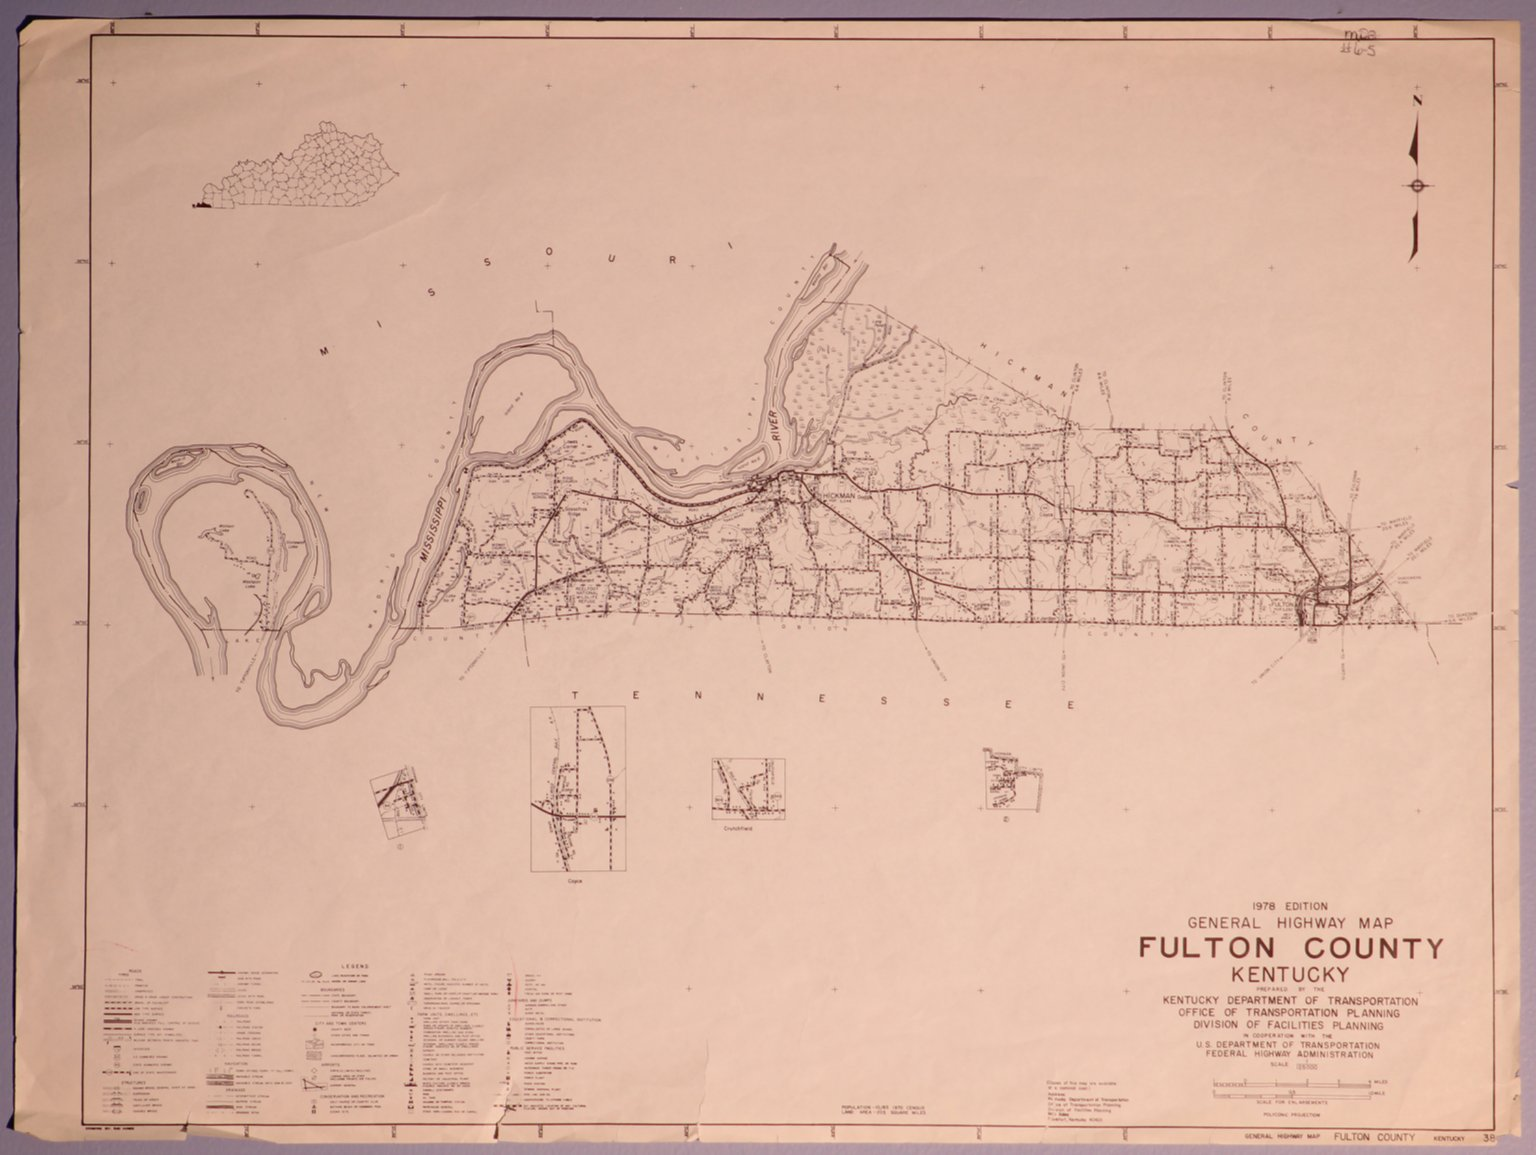 1978 Fulton County Highway Map